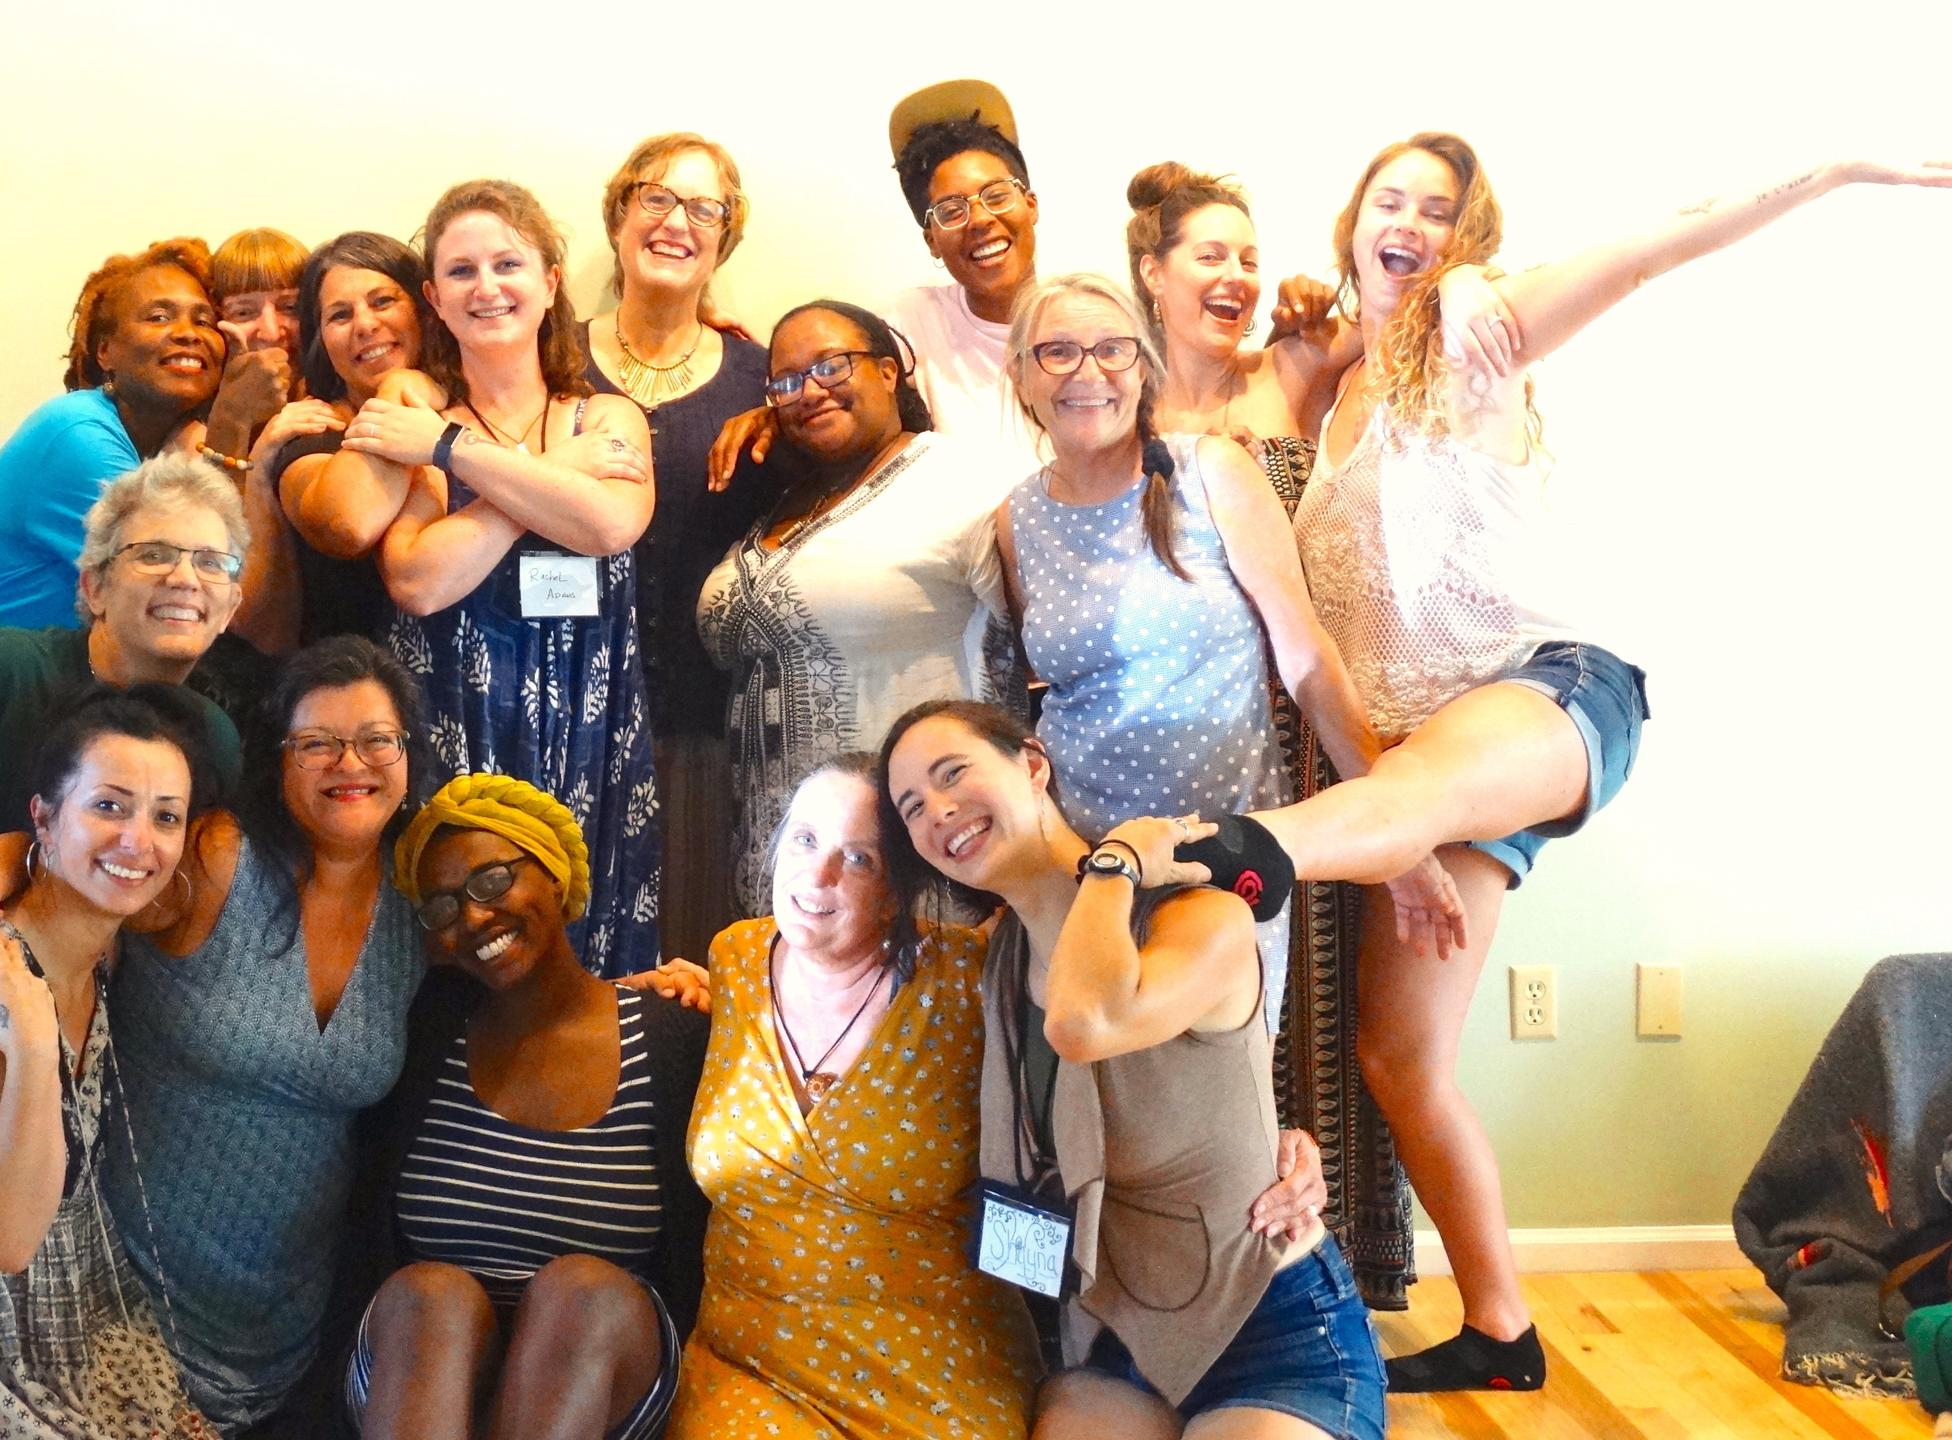 Saturday Studies students studying wise woman within with Red Moon Herbs and Southeast Wise Women founder Corinna Wood